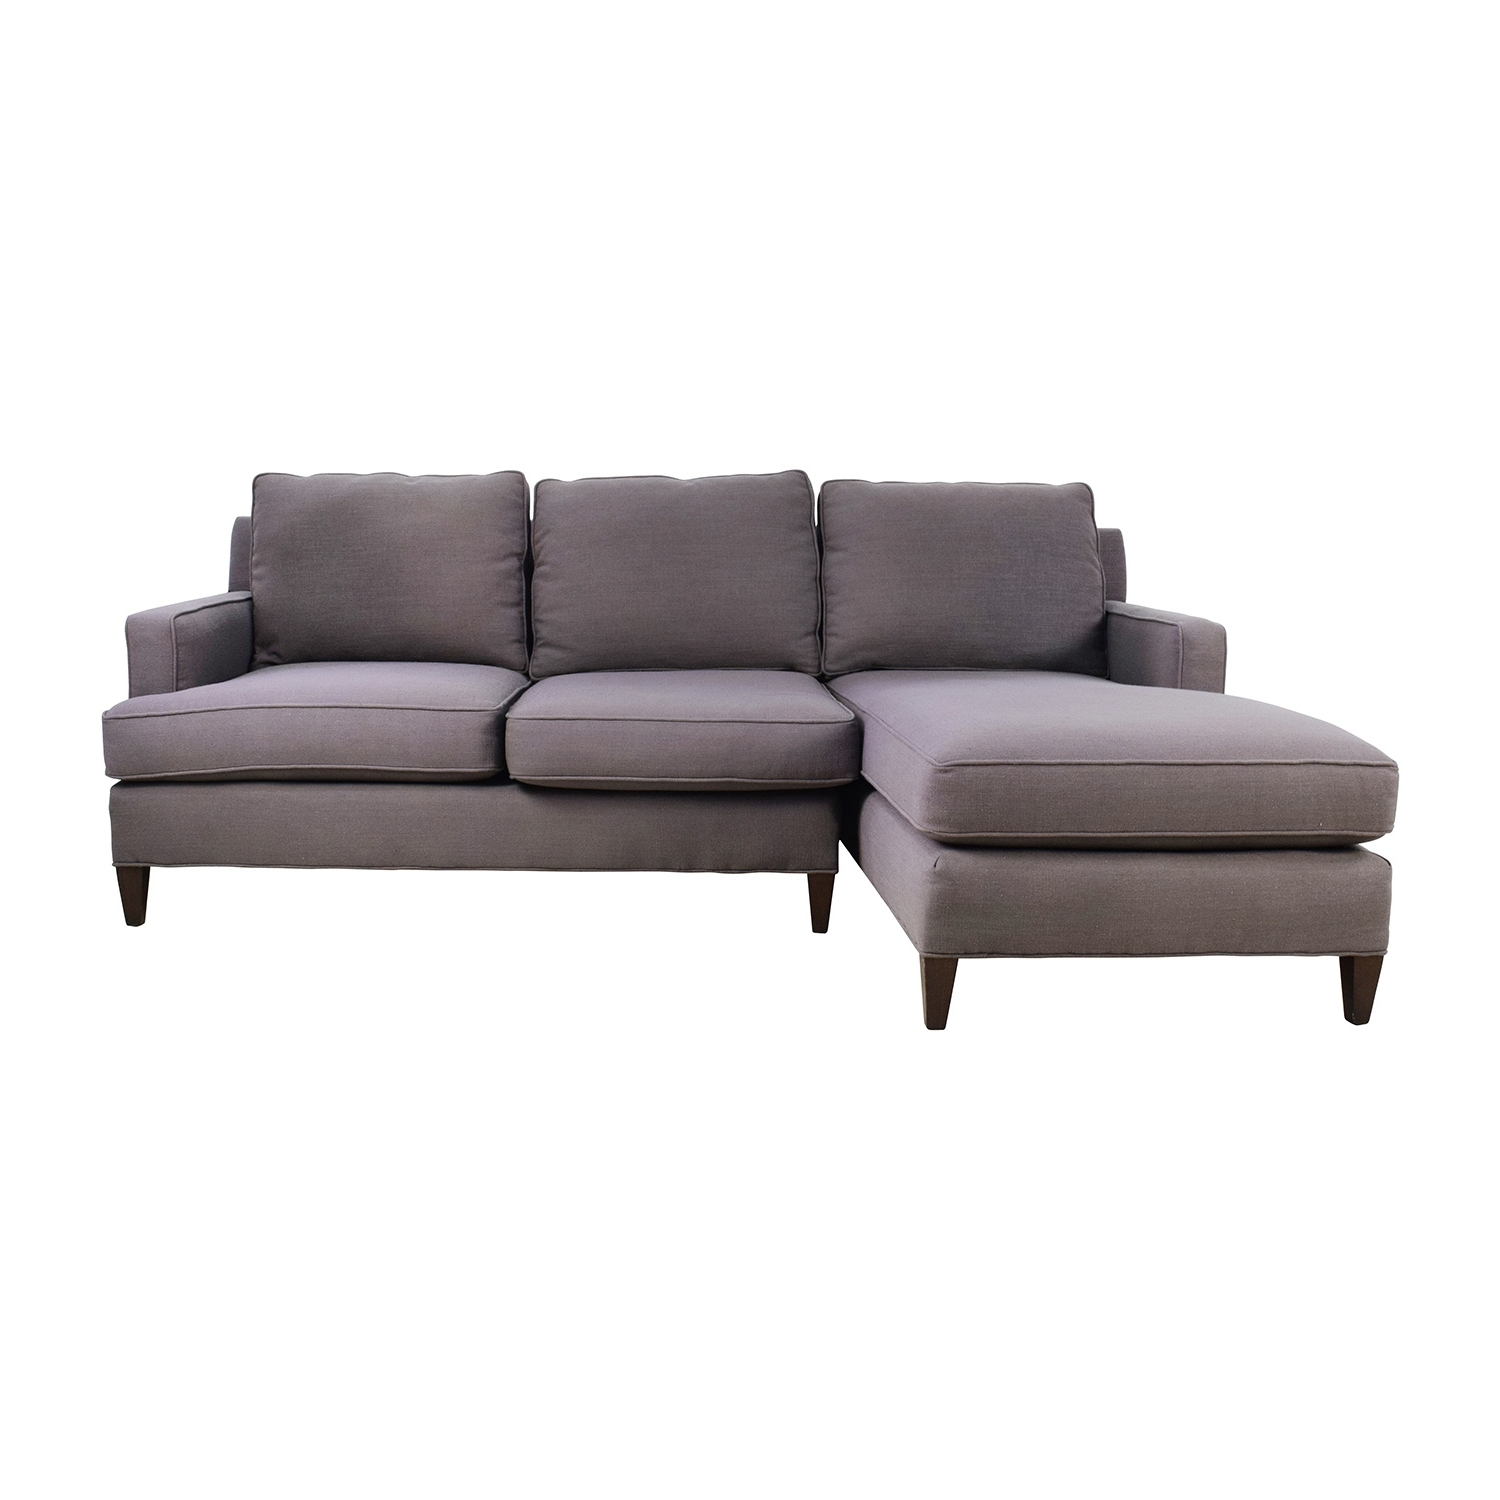 [%81% Off – Mitchell Gold & Bob Williams Mitchell Gold + Bob Pertaining To 2019 Sectional Sofas In Charlotte Nc|Sectional Sofas In Charlotte Nc With Regard To Well Known 81% Off – Mitchell Gold & Bob Williams Mitchell Gold + Bob|Most Up To Date Sectional Sofas In Charlotte Nc With Regard To 81% Off – Mitchell Gold & Bob Williams Mitchell Gold + Bob|Current 81% Off – Mitchell Gold & Bob Williams Mitchell Gold + Bob In Sectional Sofas In Charlotte Nc%] (View 1 of 20)